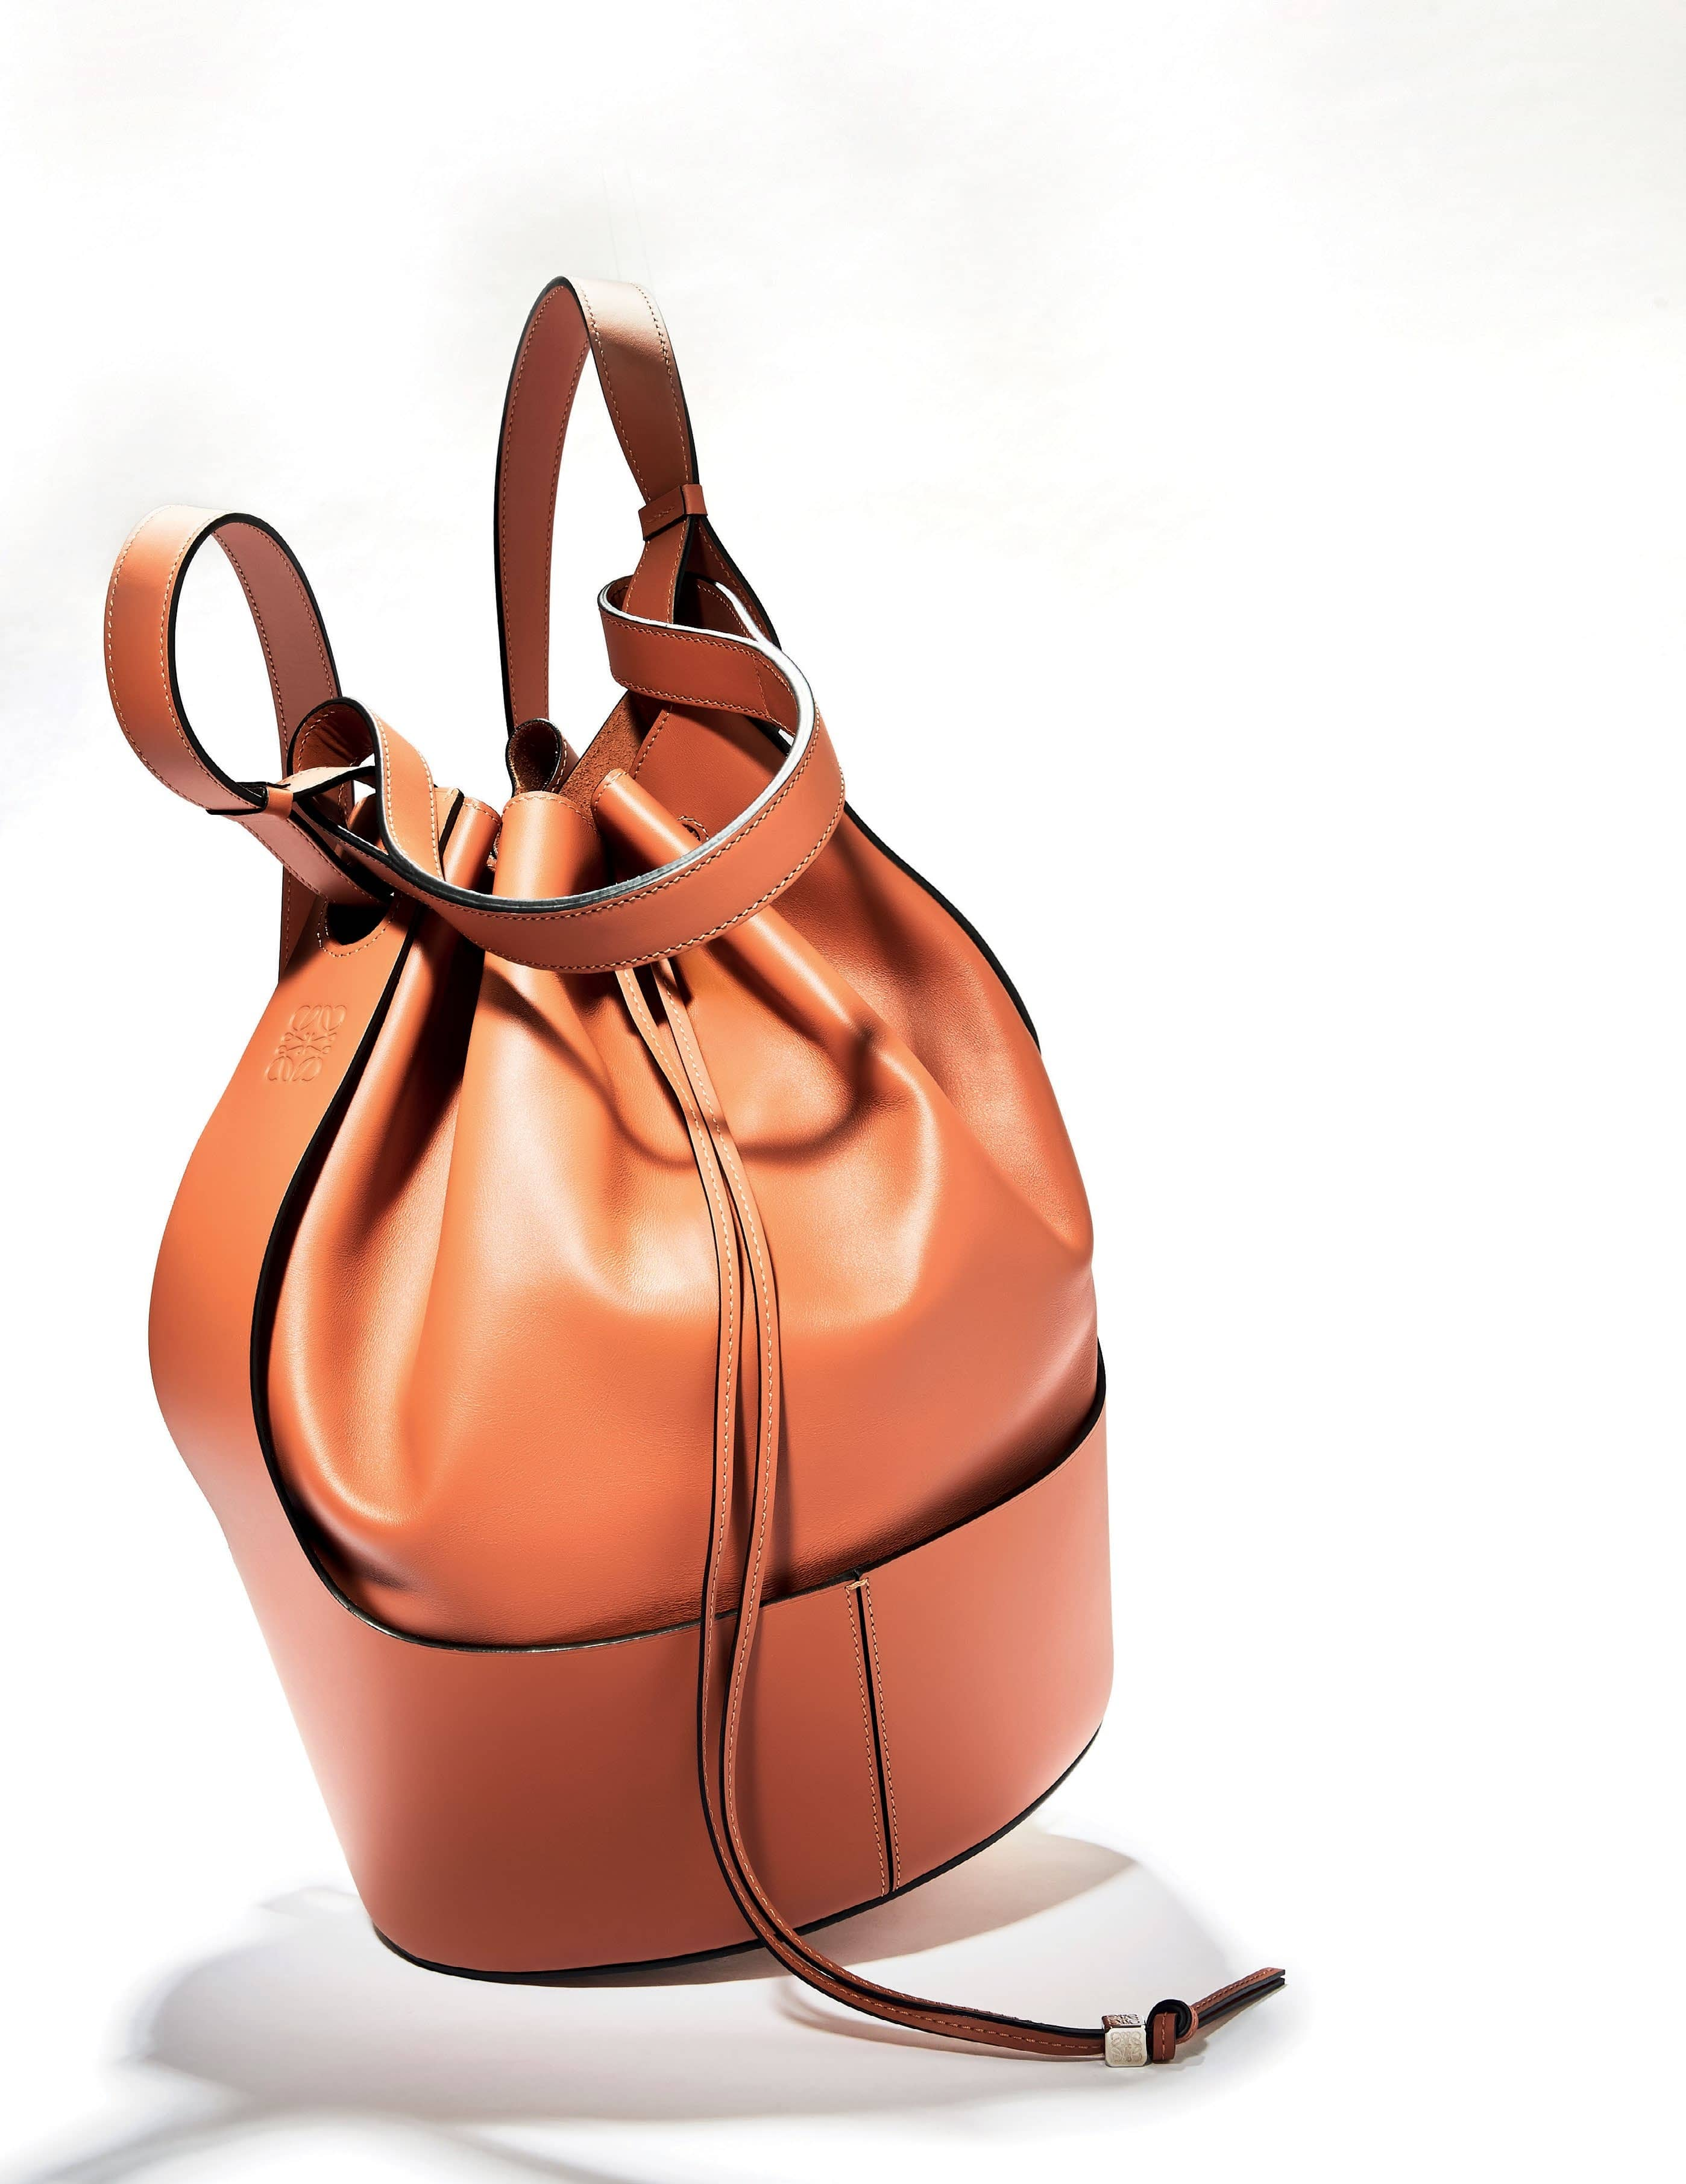 The Loewe Balloon Bag Is Now Bigger, Better And Built For The Boys